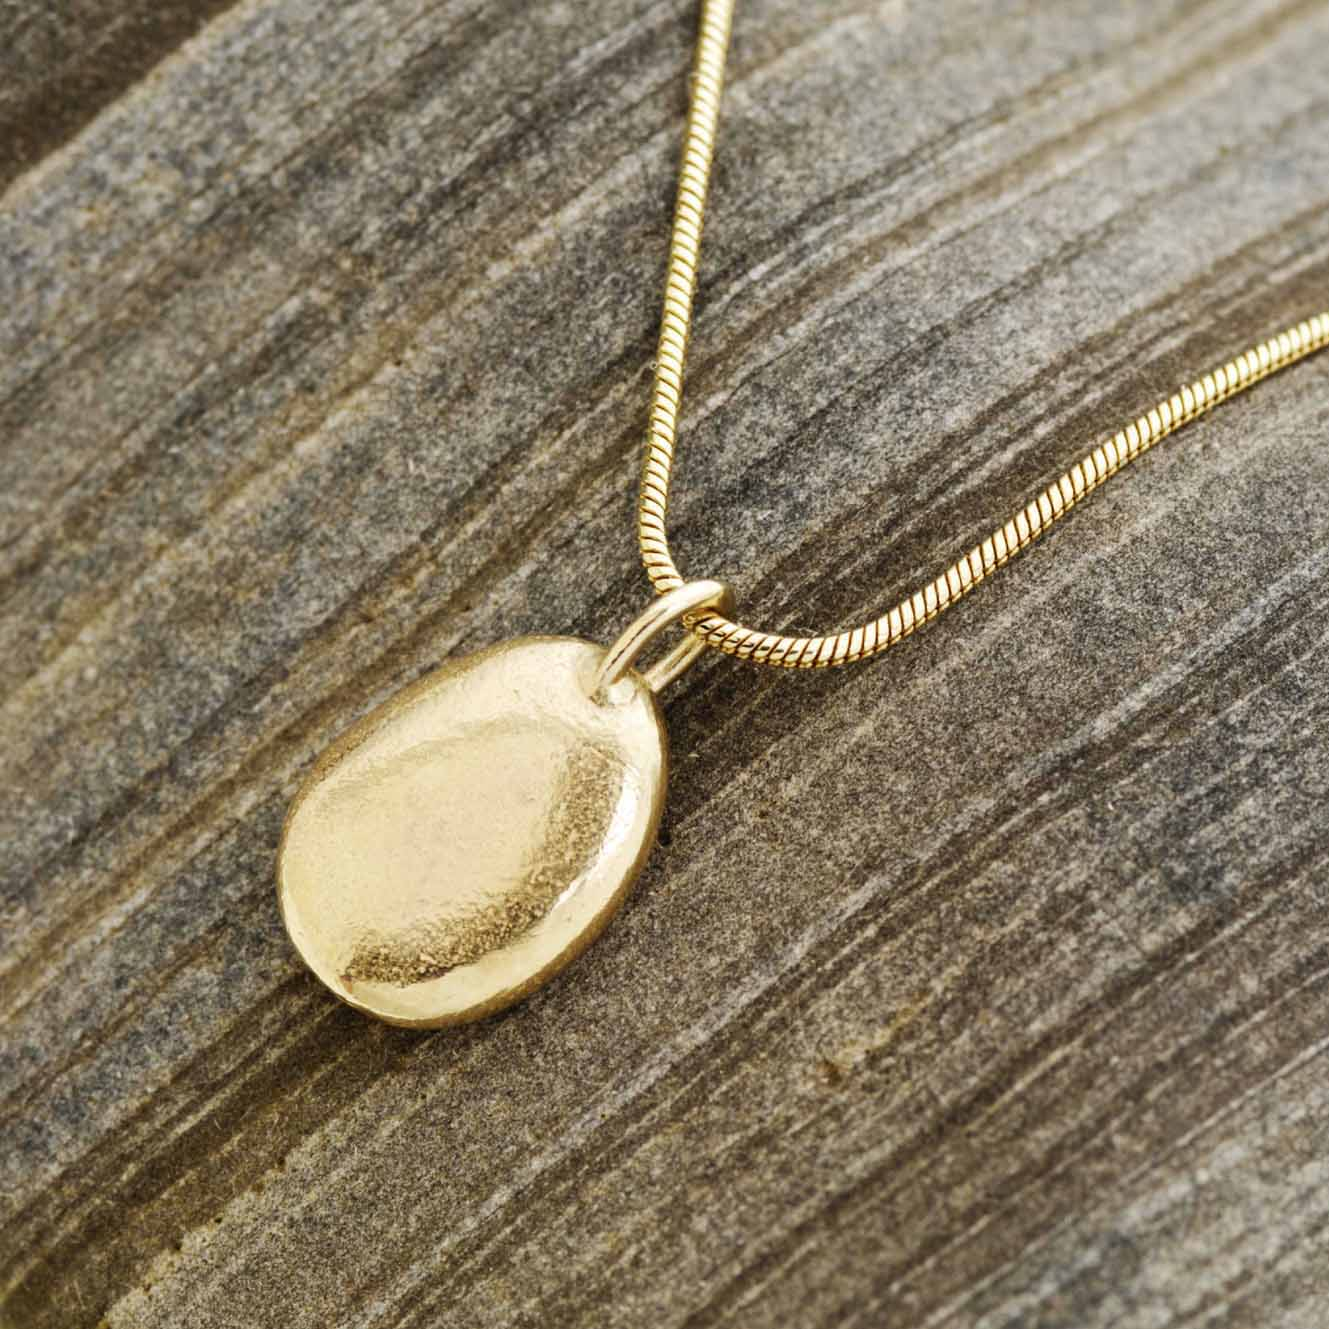 9ct gold pebble necklace alice robson jewelleryalice robson jewellery 9ct gold oval pebble necklace on snake chain aloadofball Choice Image